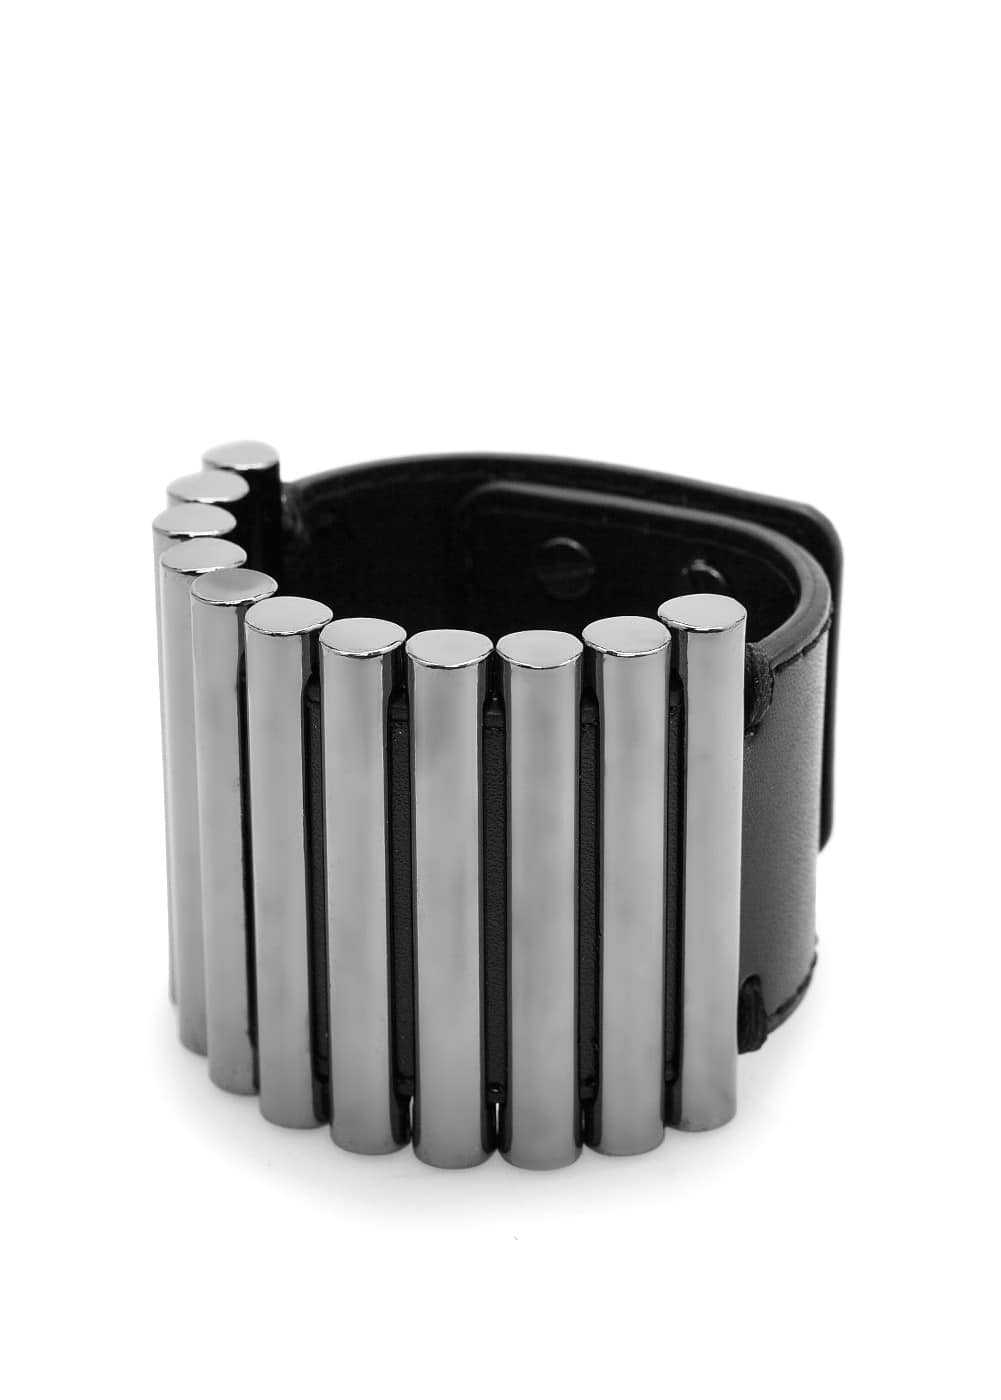 Metal pieces cuff